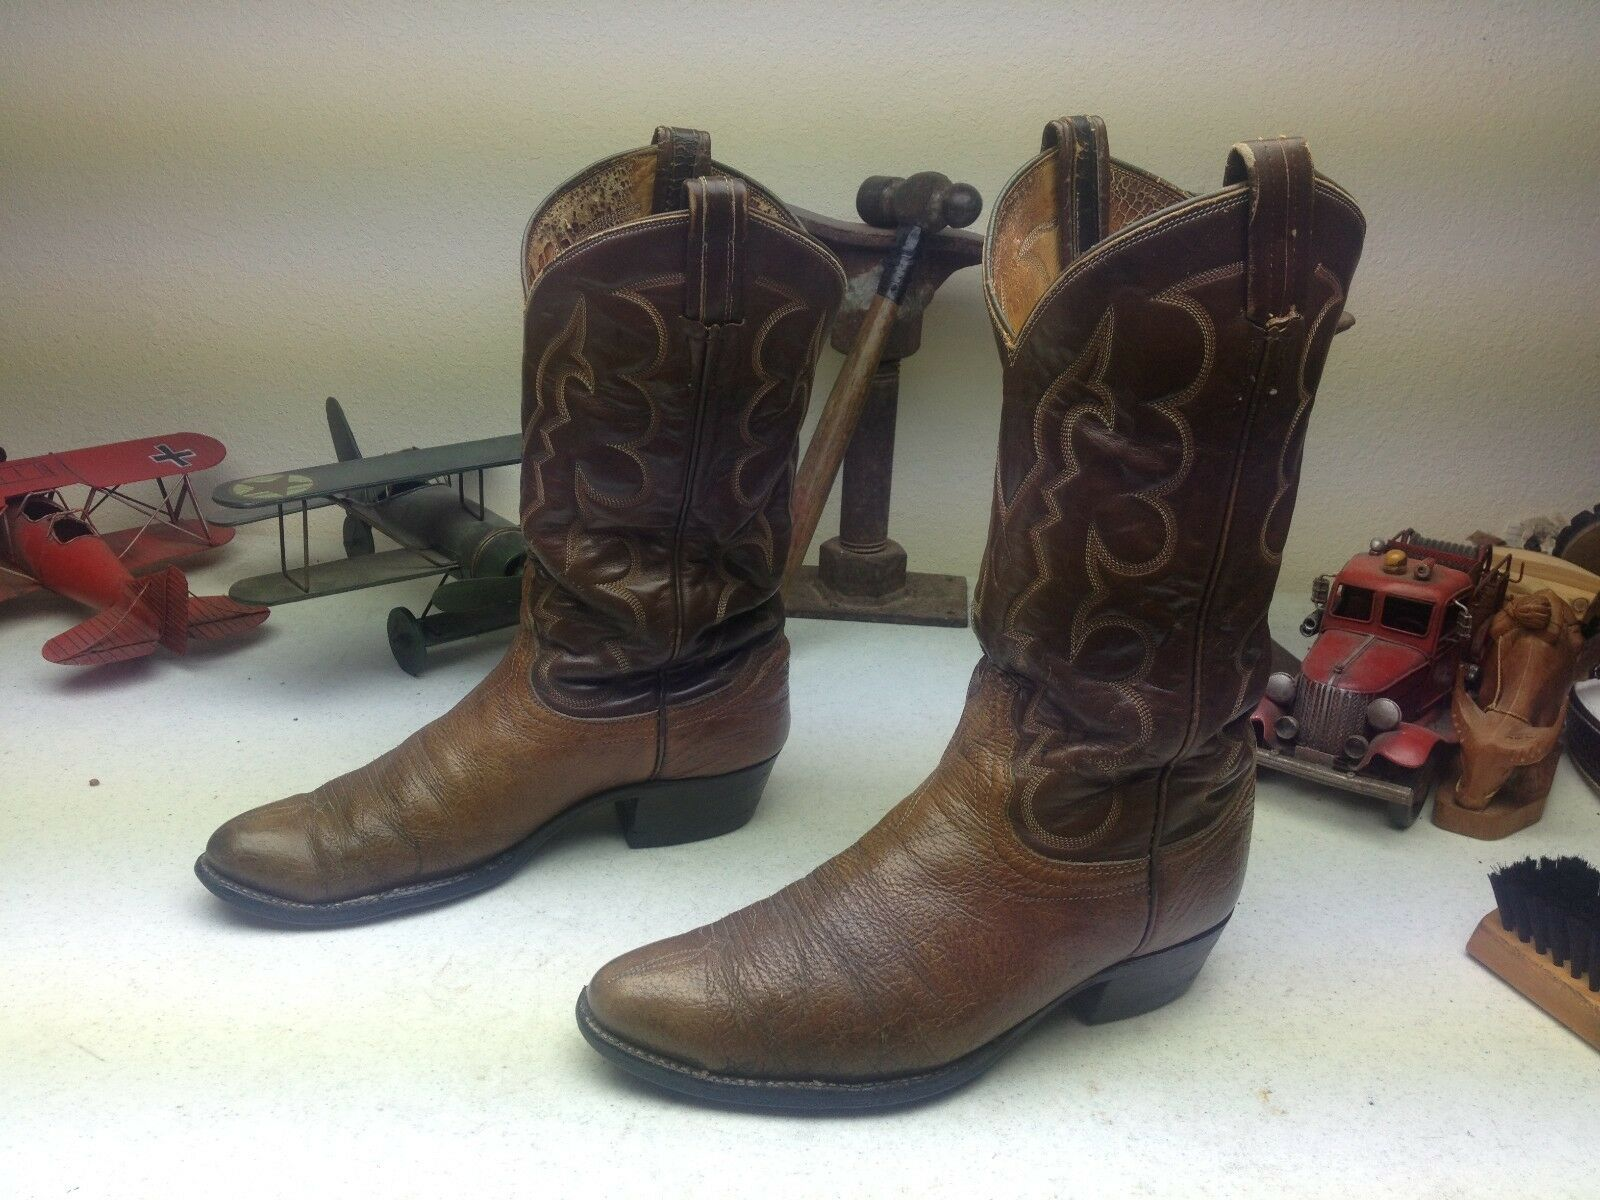 VINTAGE TONY LAMA MADE IN USA DISTRESSED ENGINEER TRAIL BOSS OLD WORK BOOTS 9D